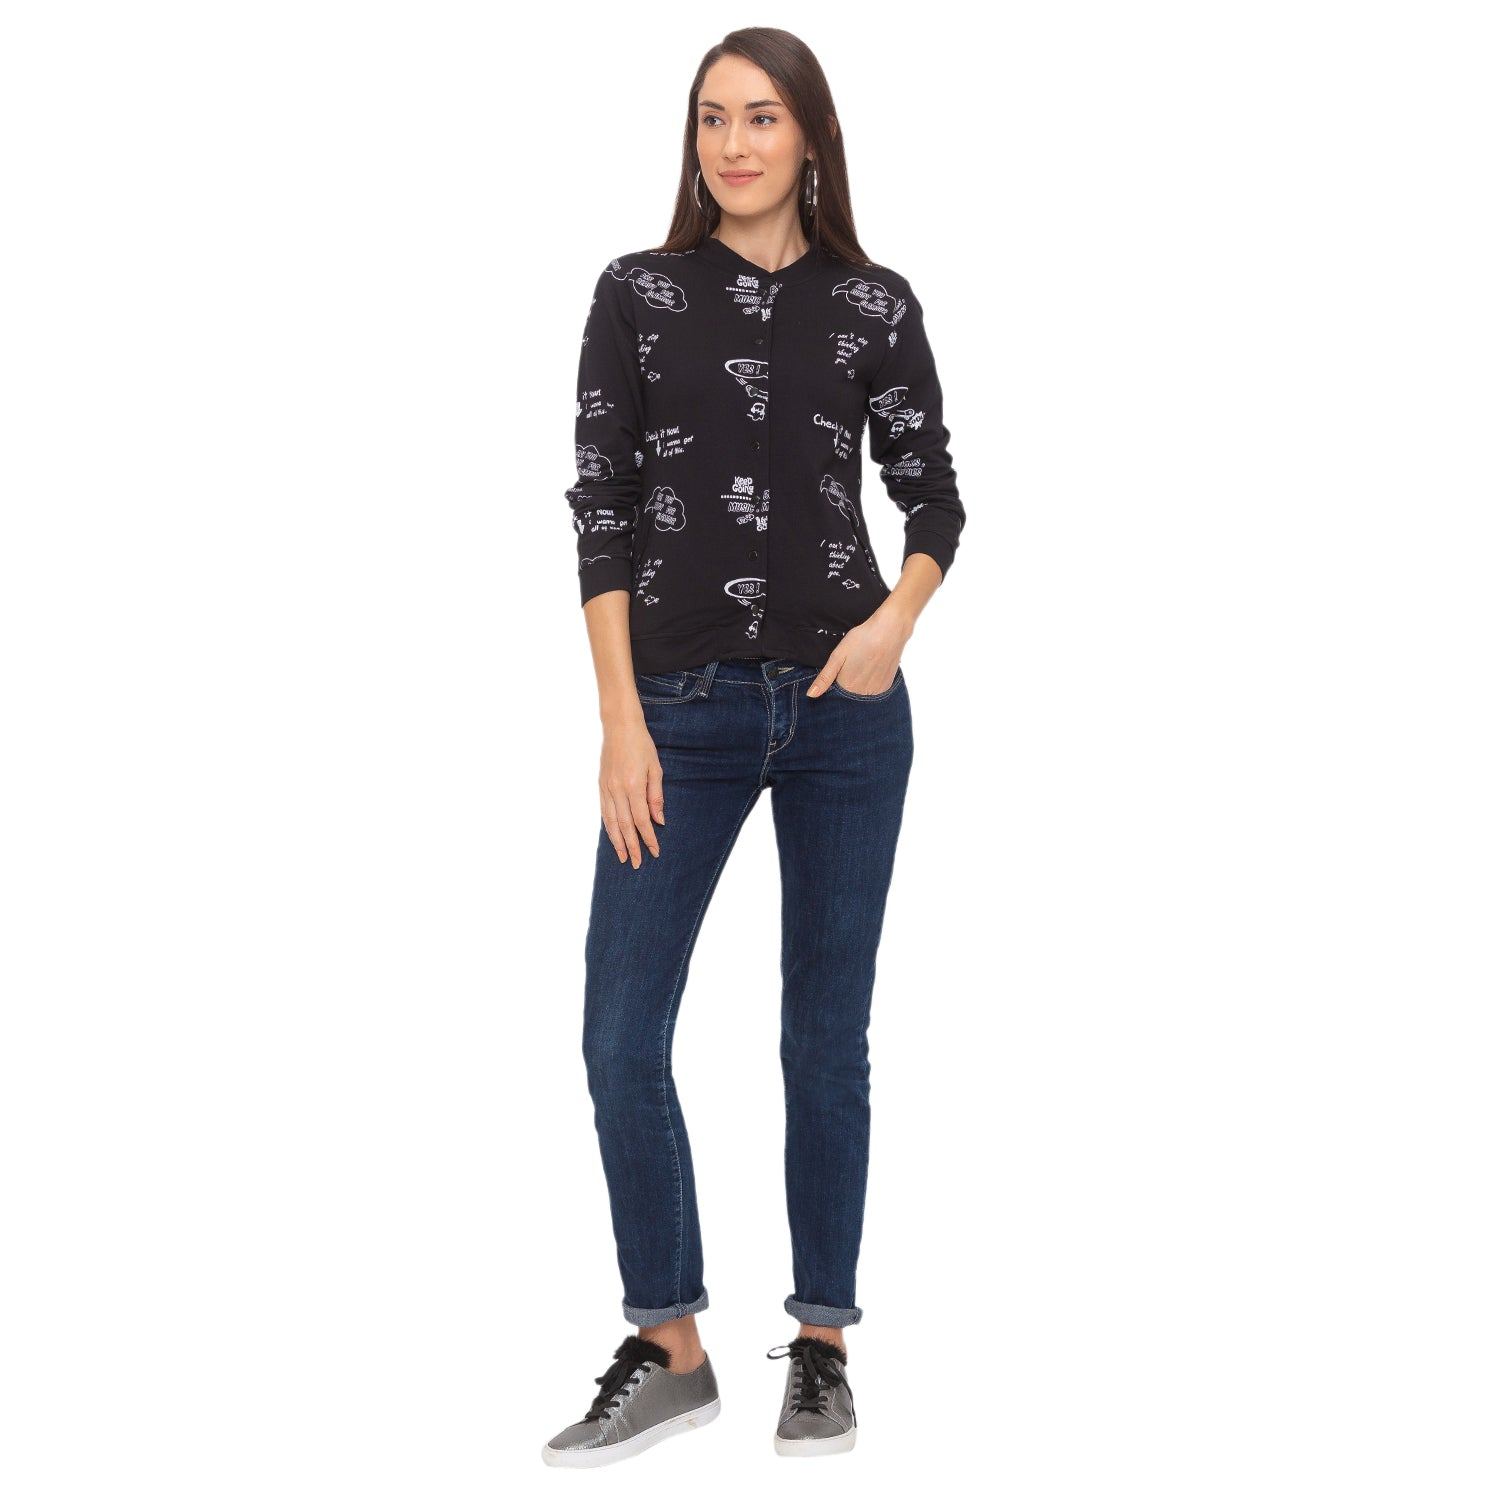 Globus Black Printed Jacket-4